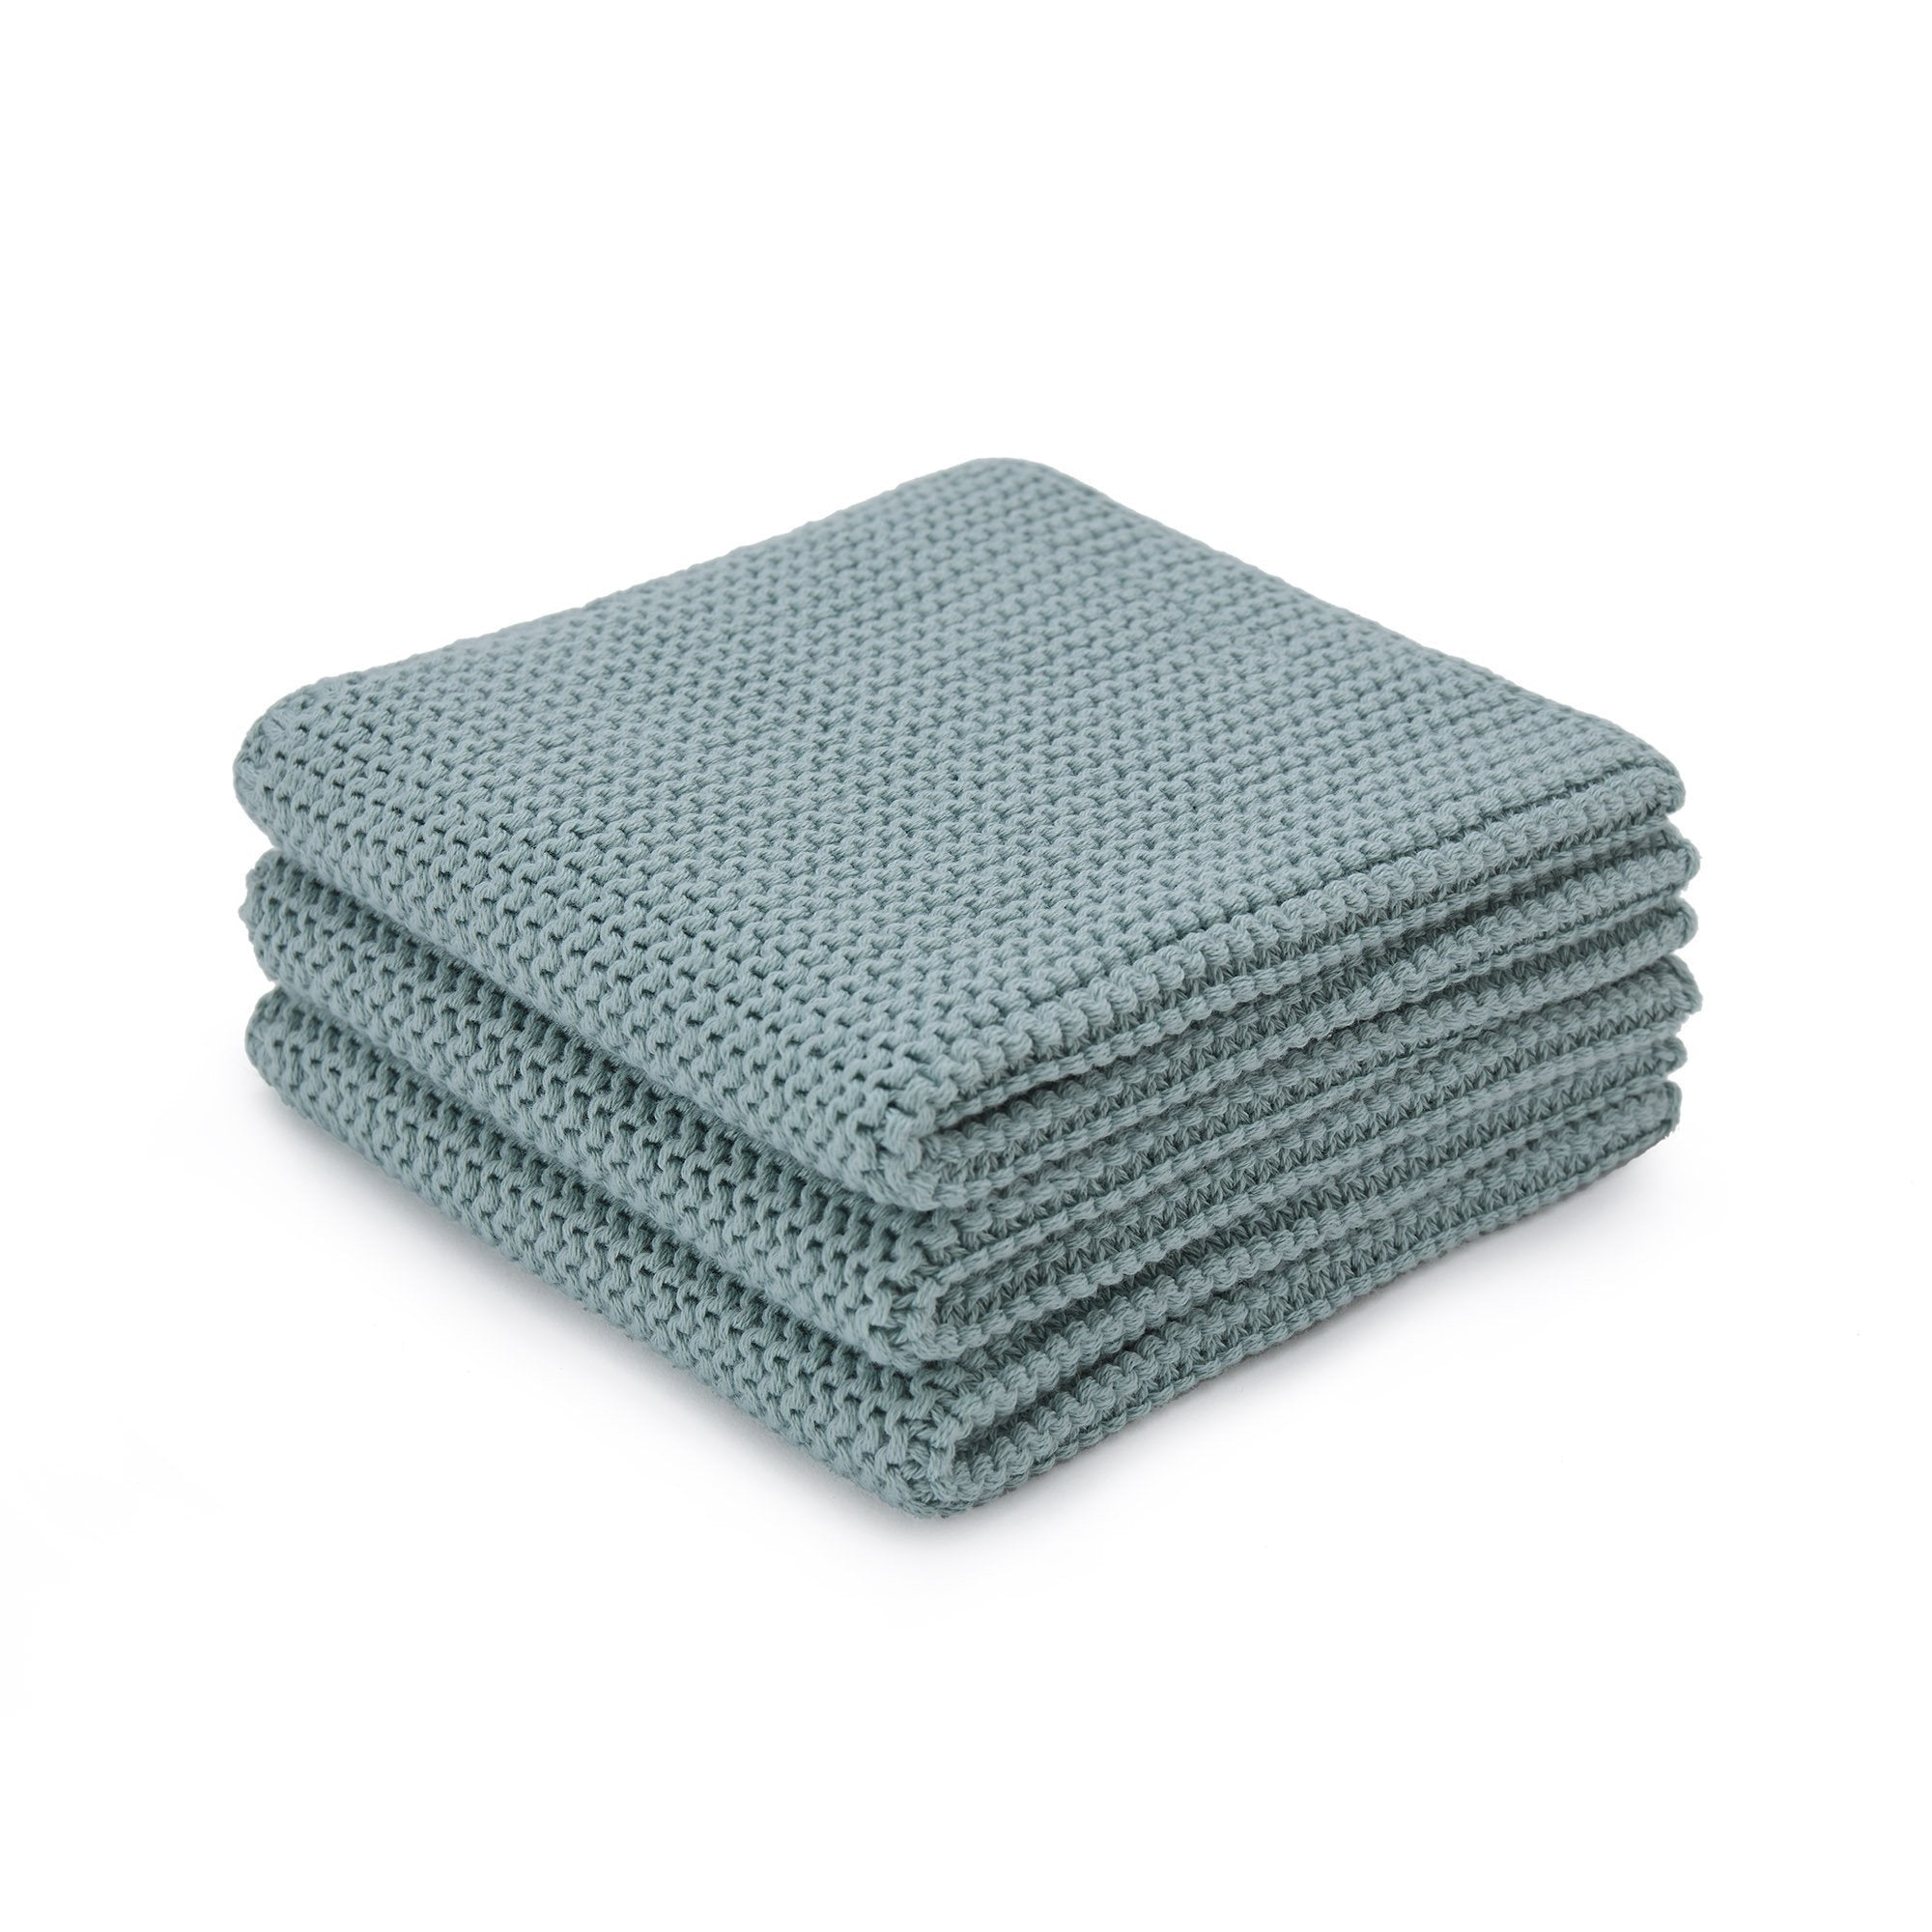 Safara dishcloth, green grey, 100% cotton